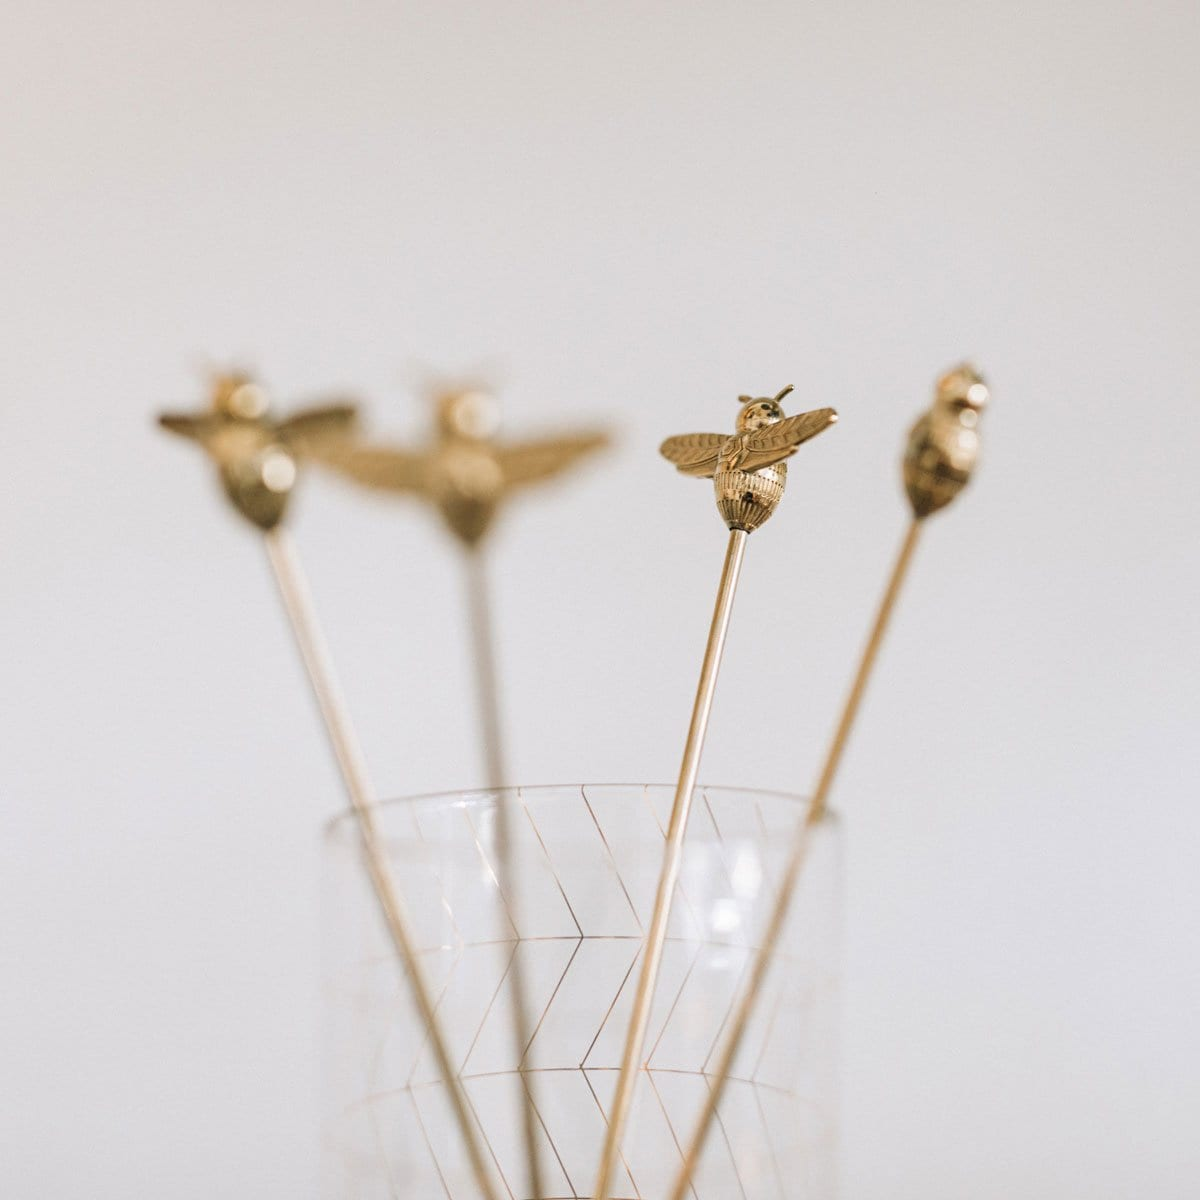 Bees Knees Stir Sticks